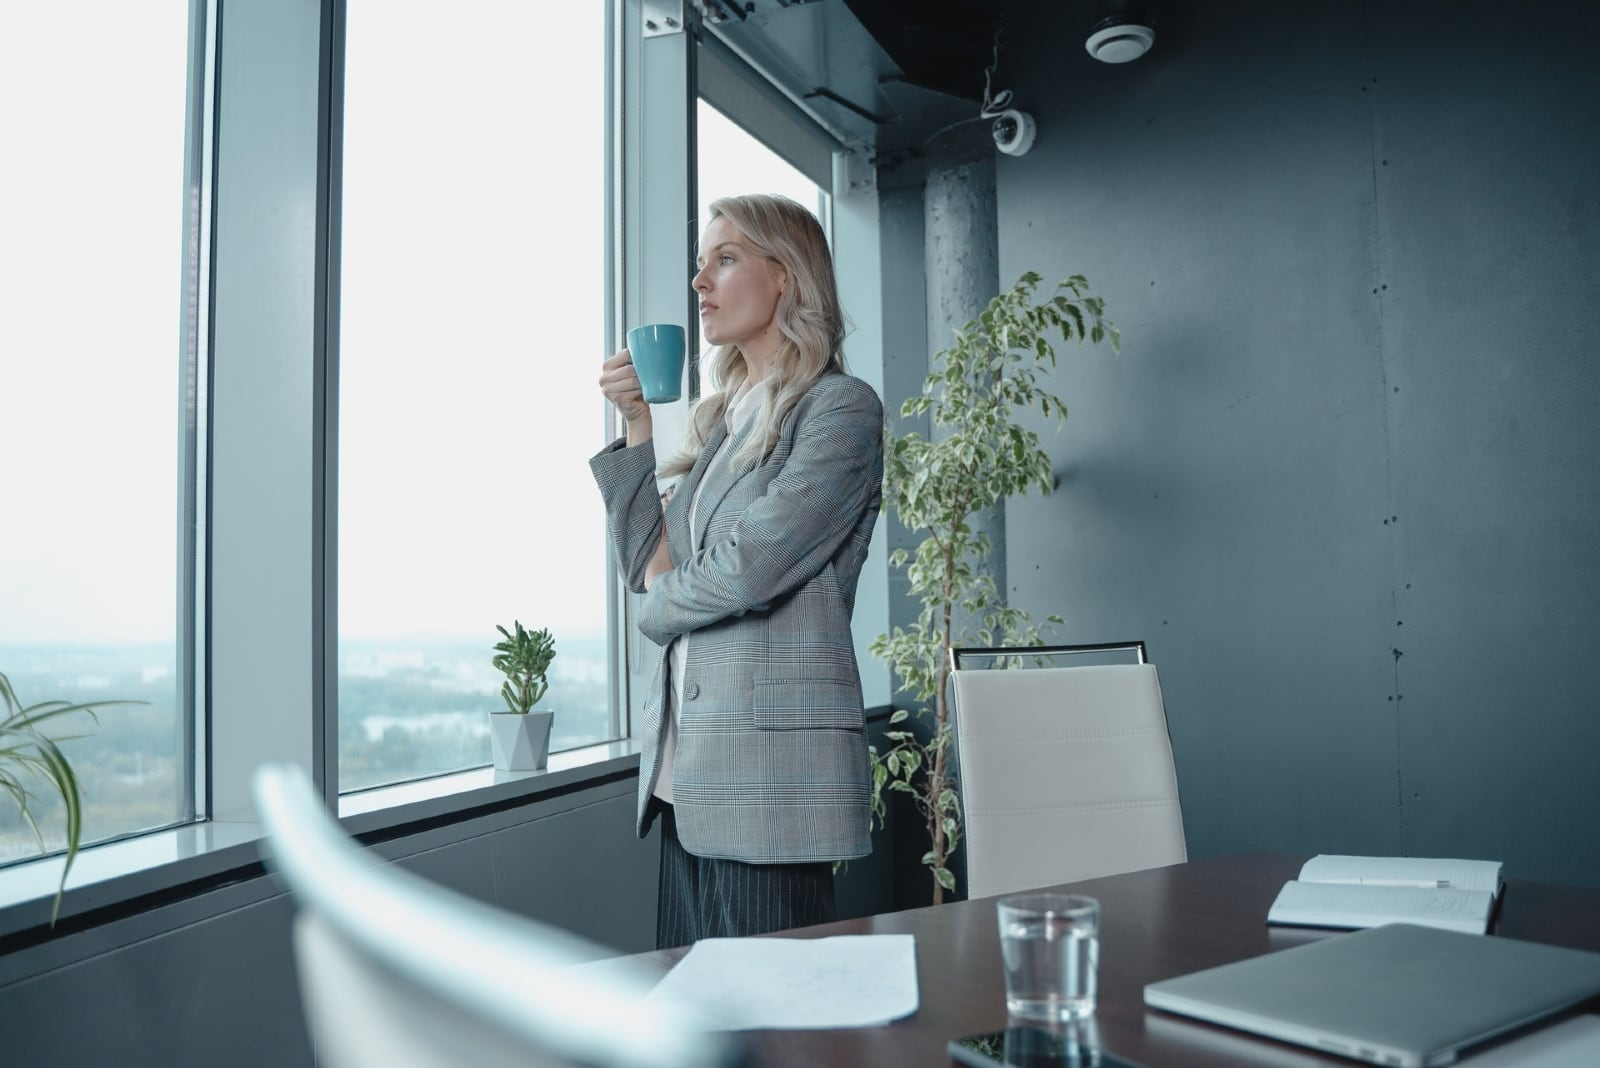 business woman holding blue mug while standing near window